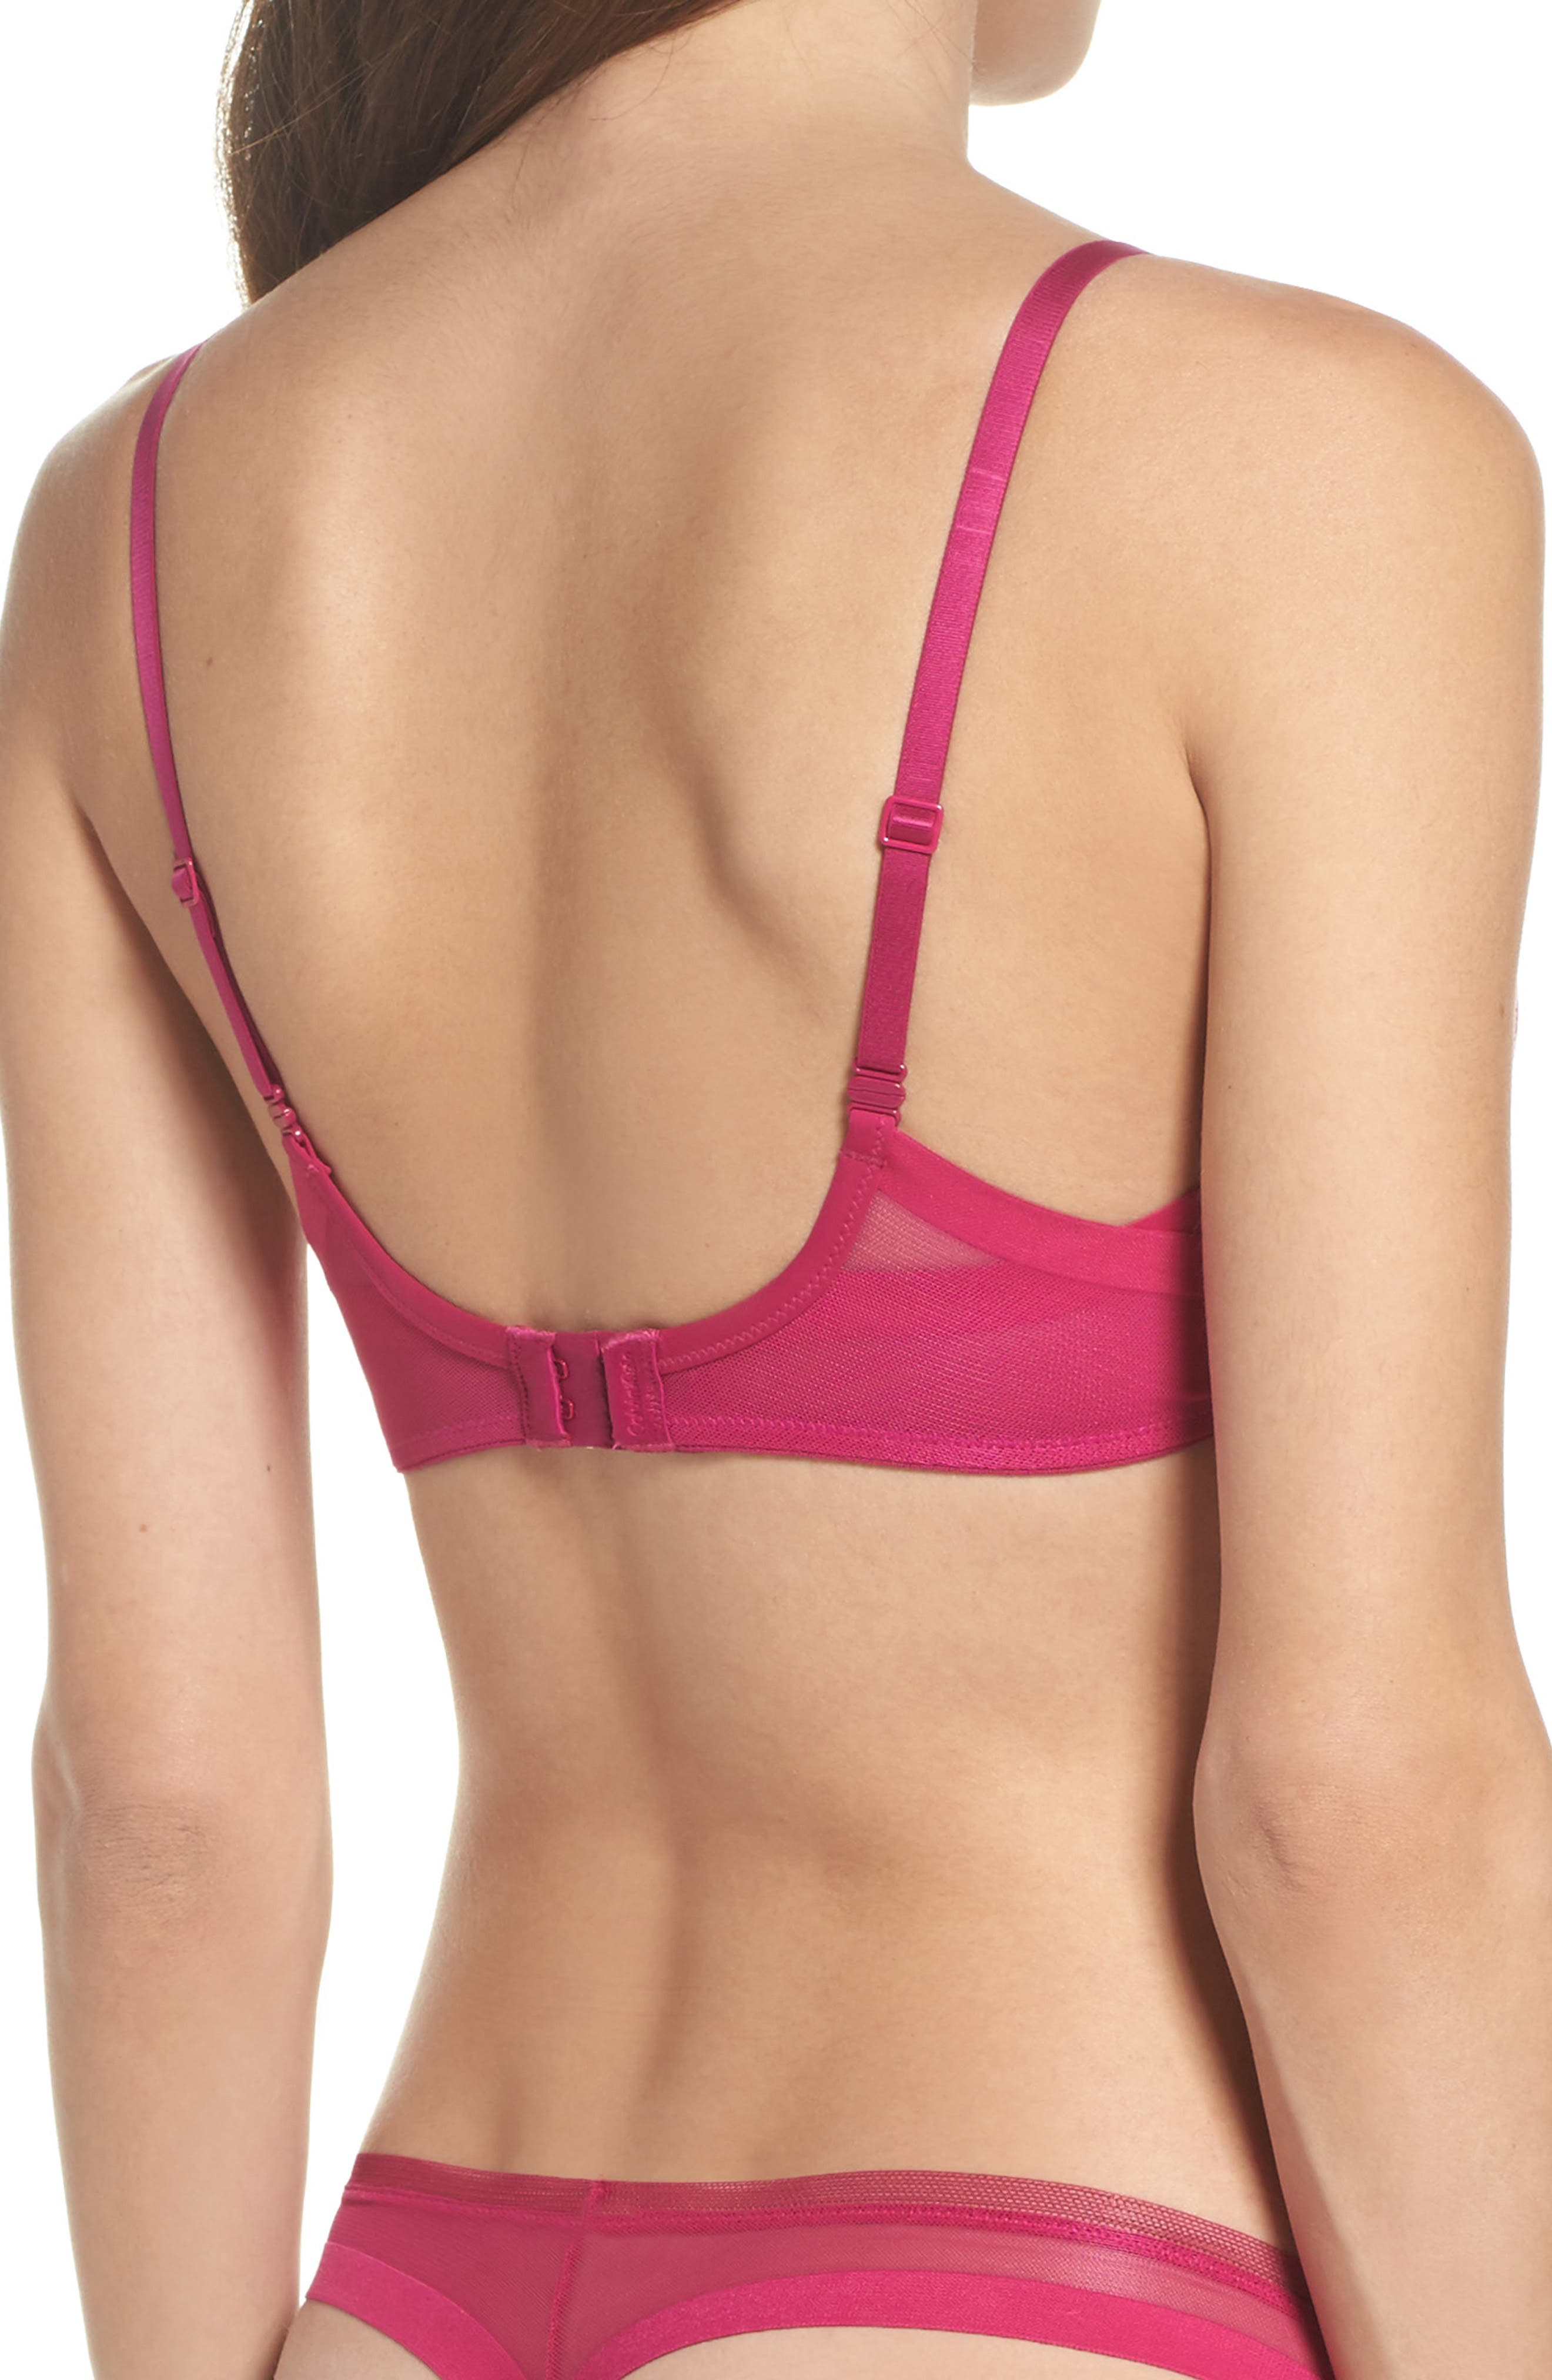 Sculpted Underwire Plunge Push-Up Bra,                             Alternate thumbnail 2, color,                             658